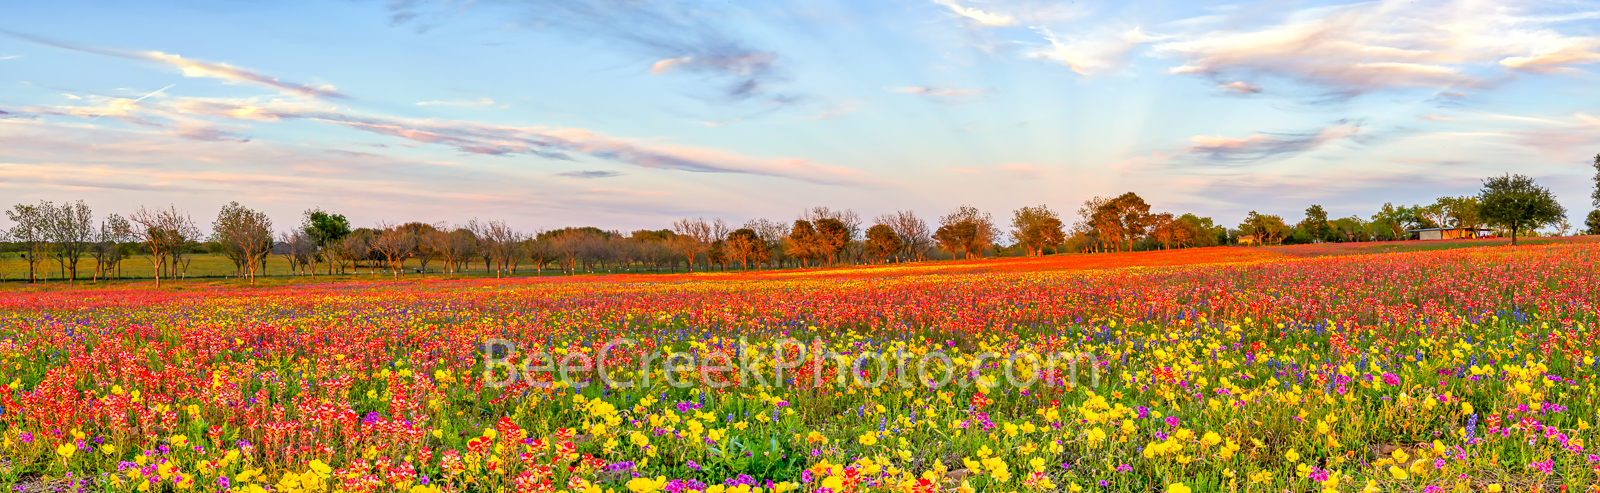 Colorful Wildflowers Panorama - Another panorama of Texas wildflowers as they seem to climb this hill side with all these wonderful...